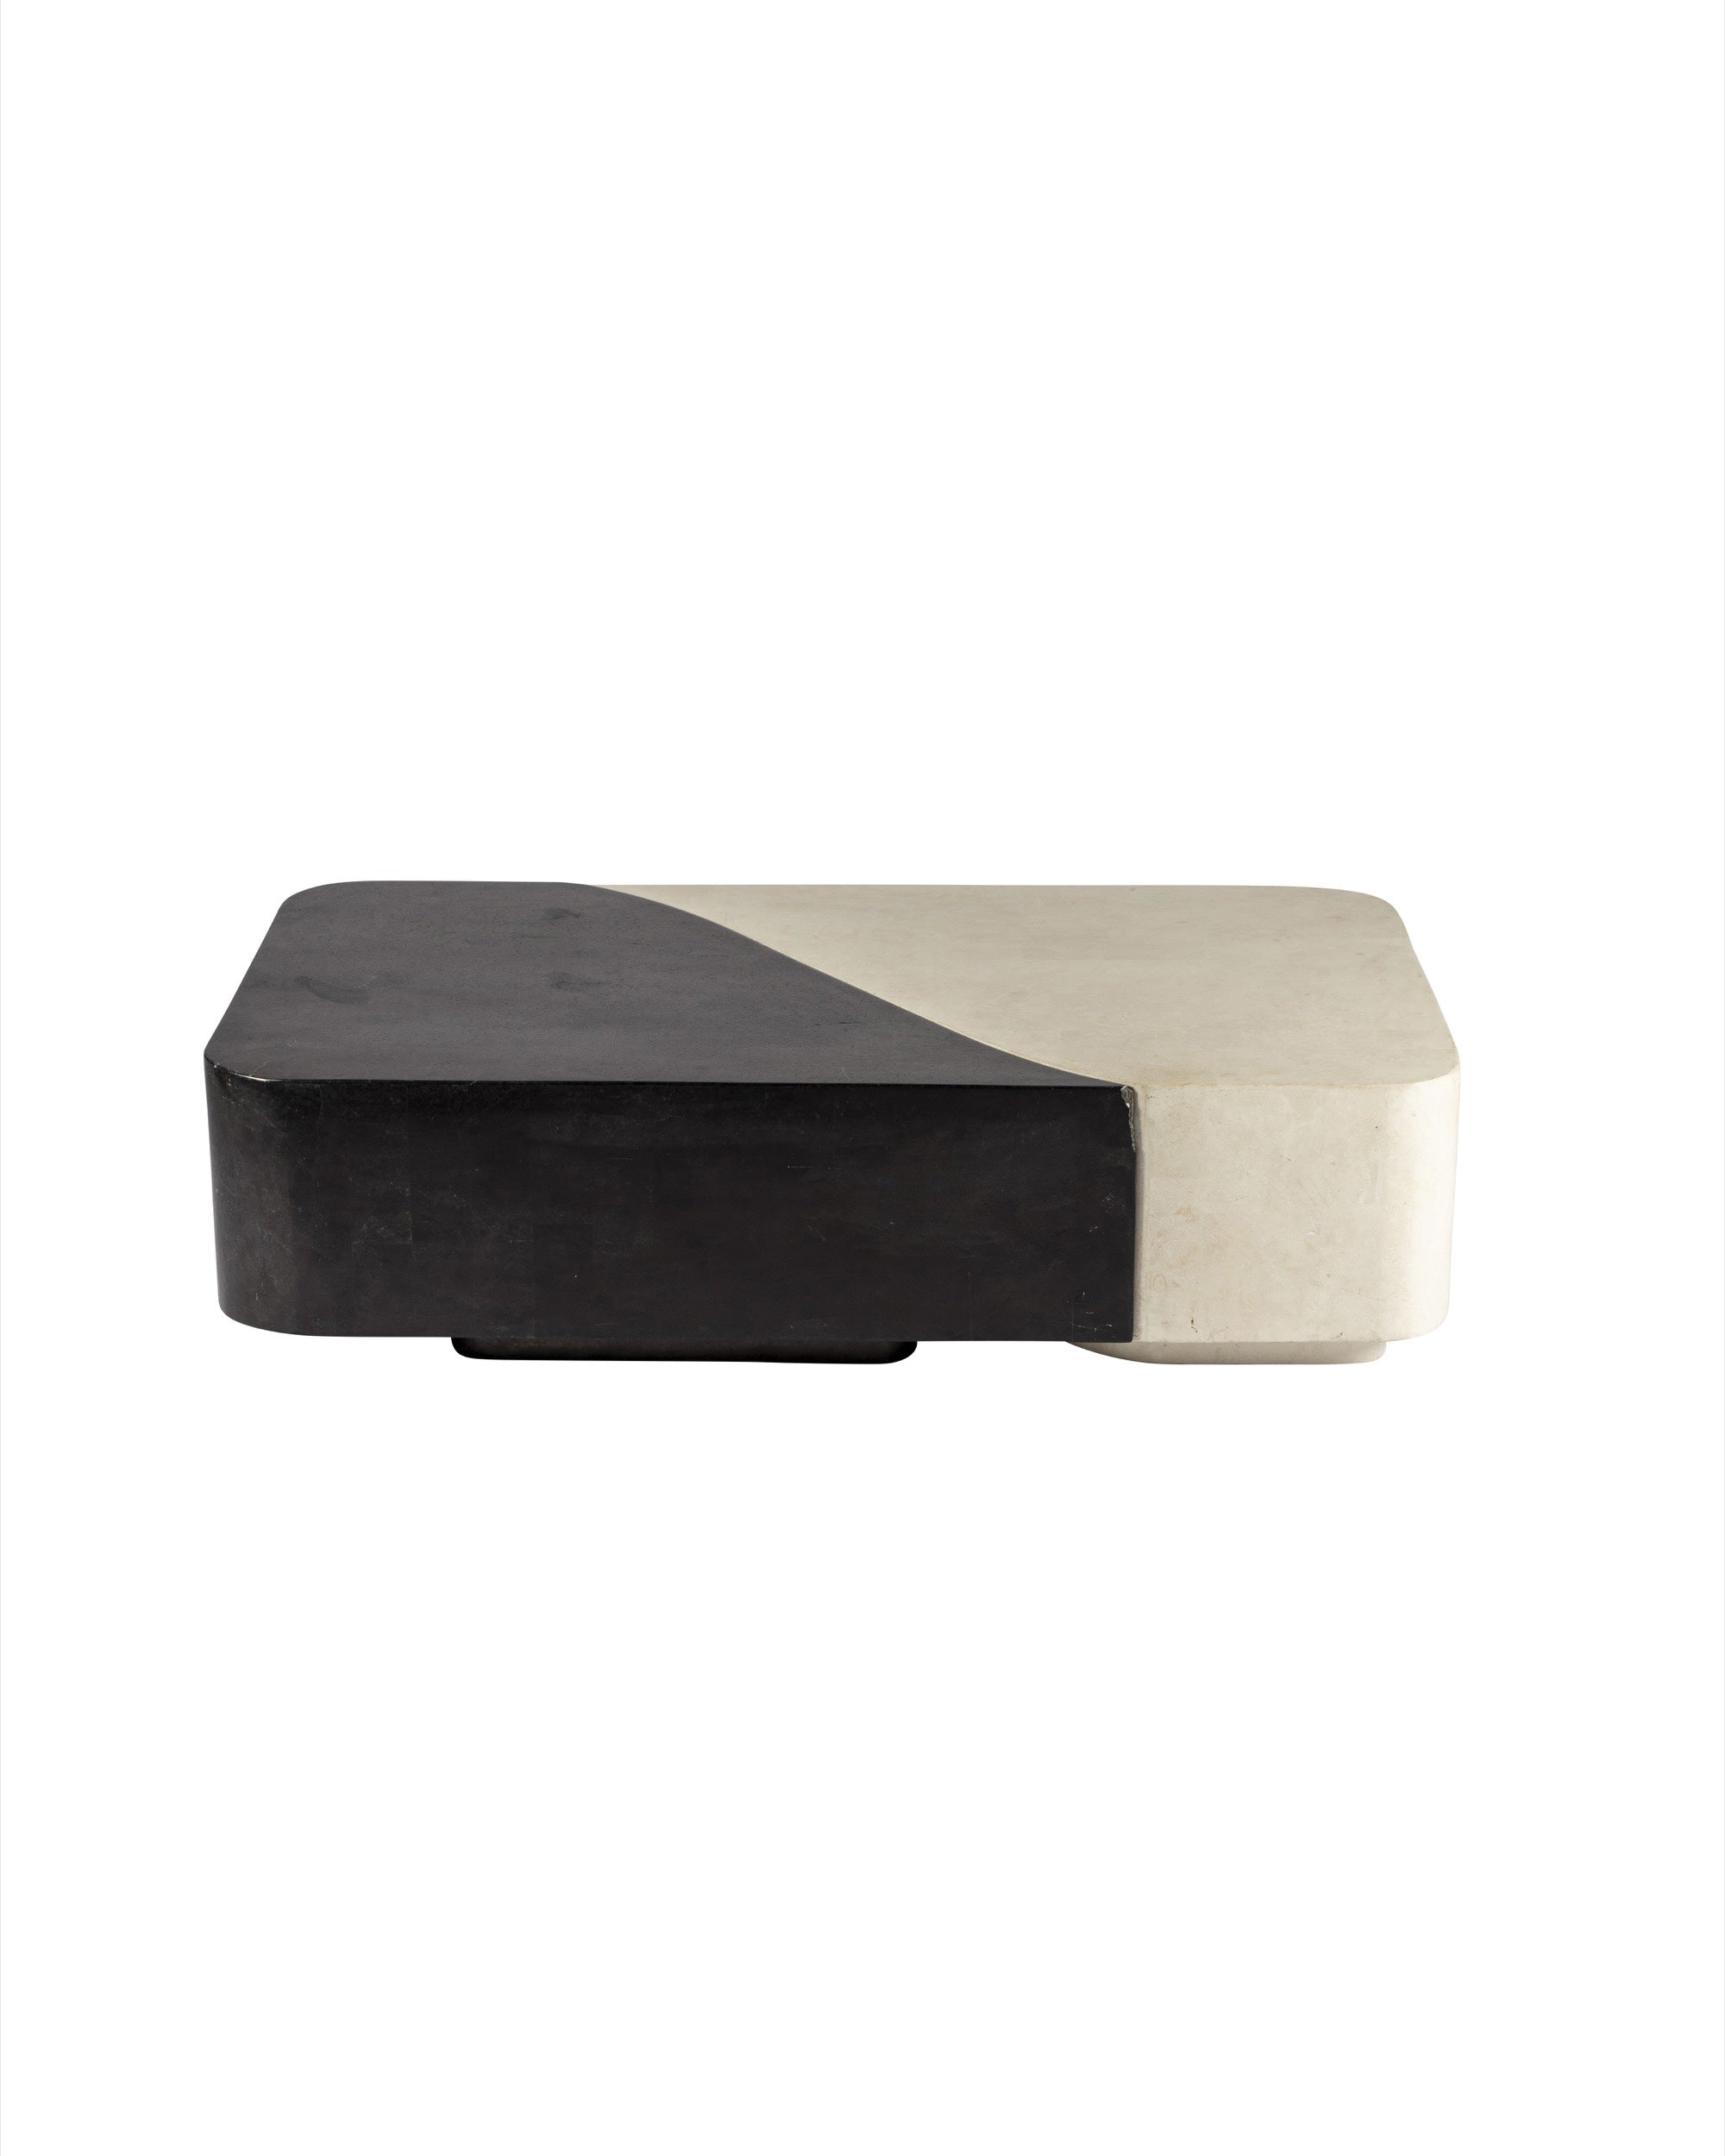 Black and white resin coffee table